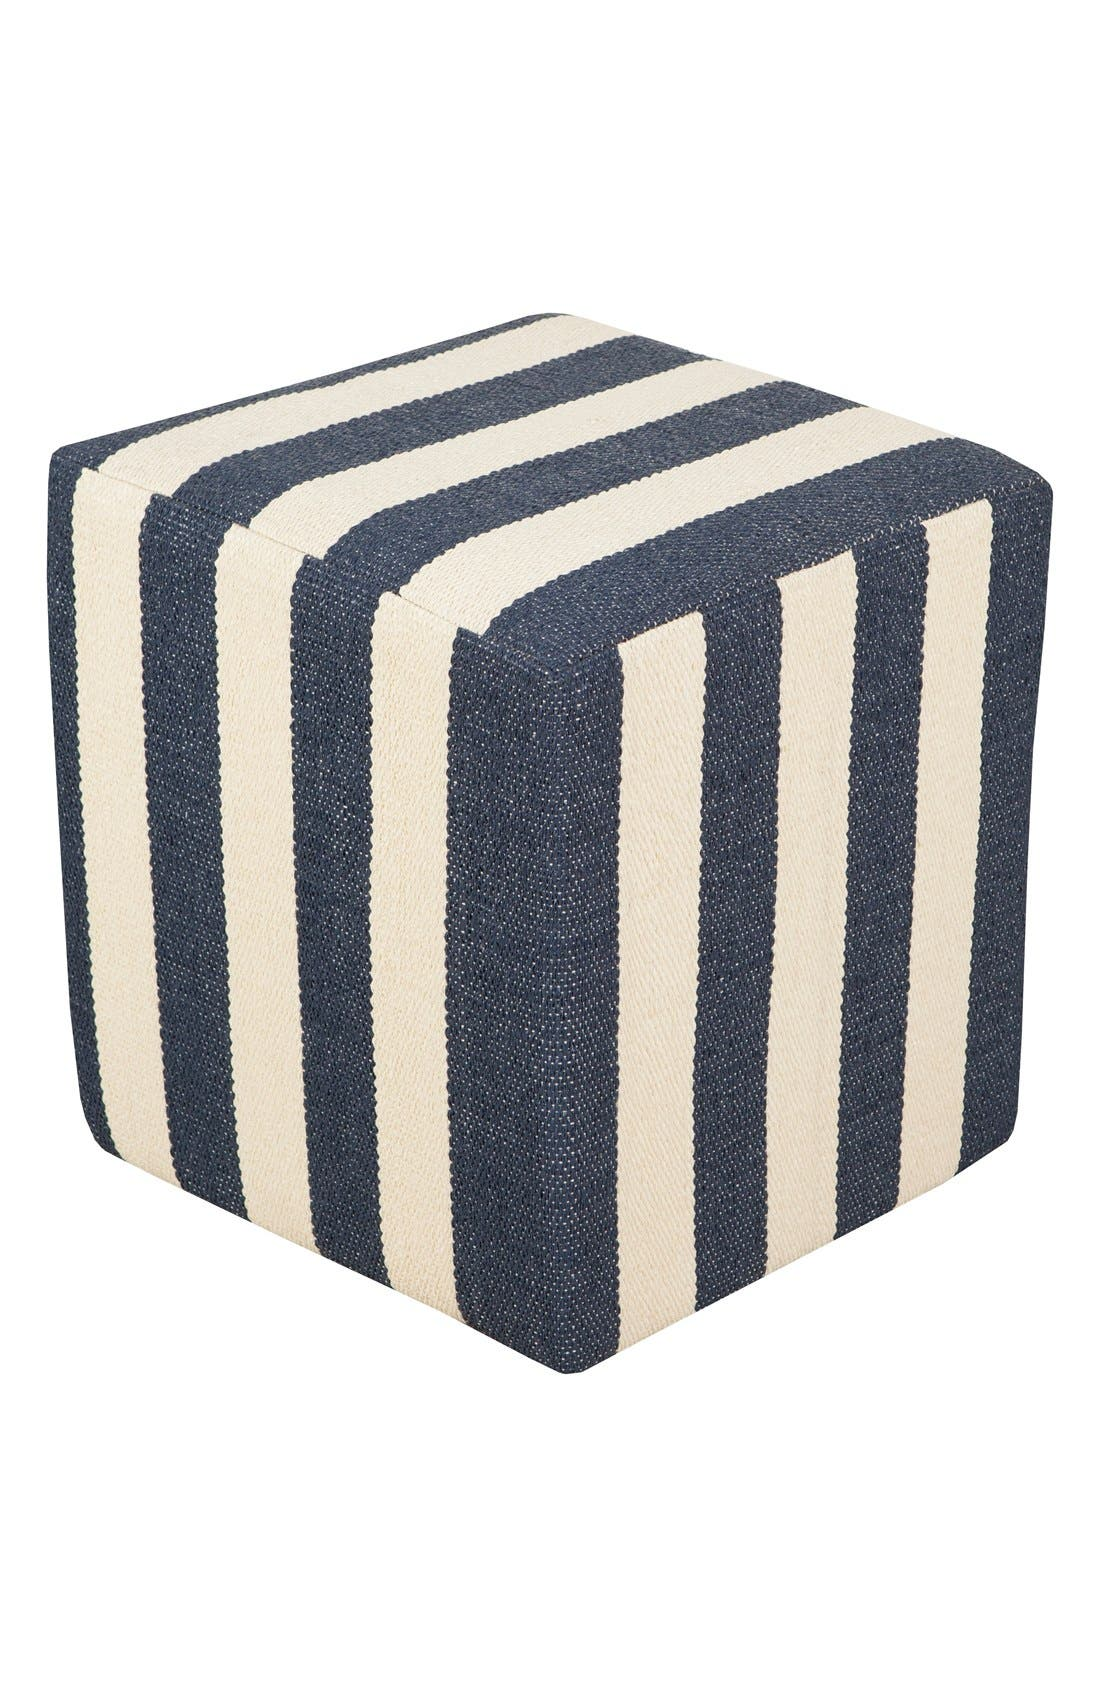 'Picnic' Pouf,                         Main,                         color, Navy/ Ivory